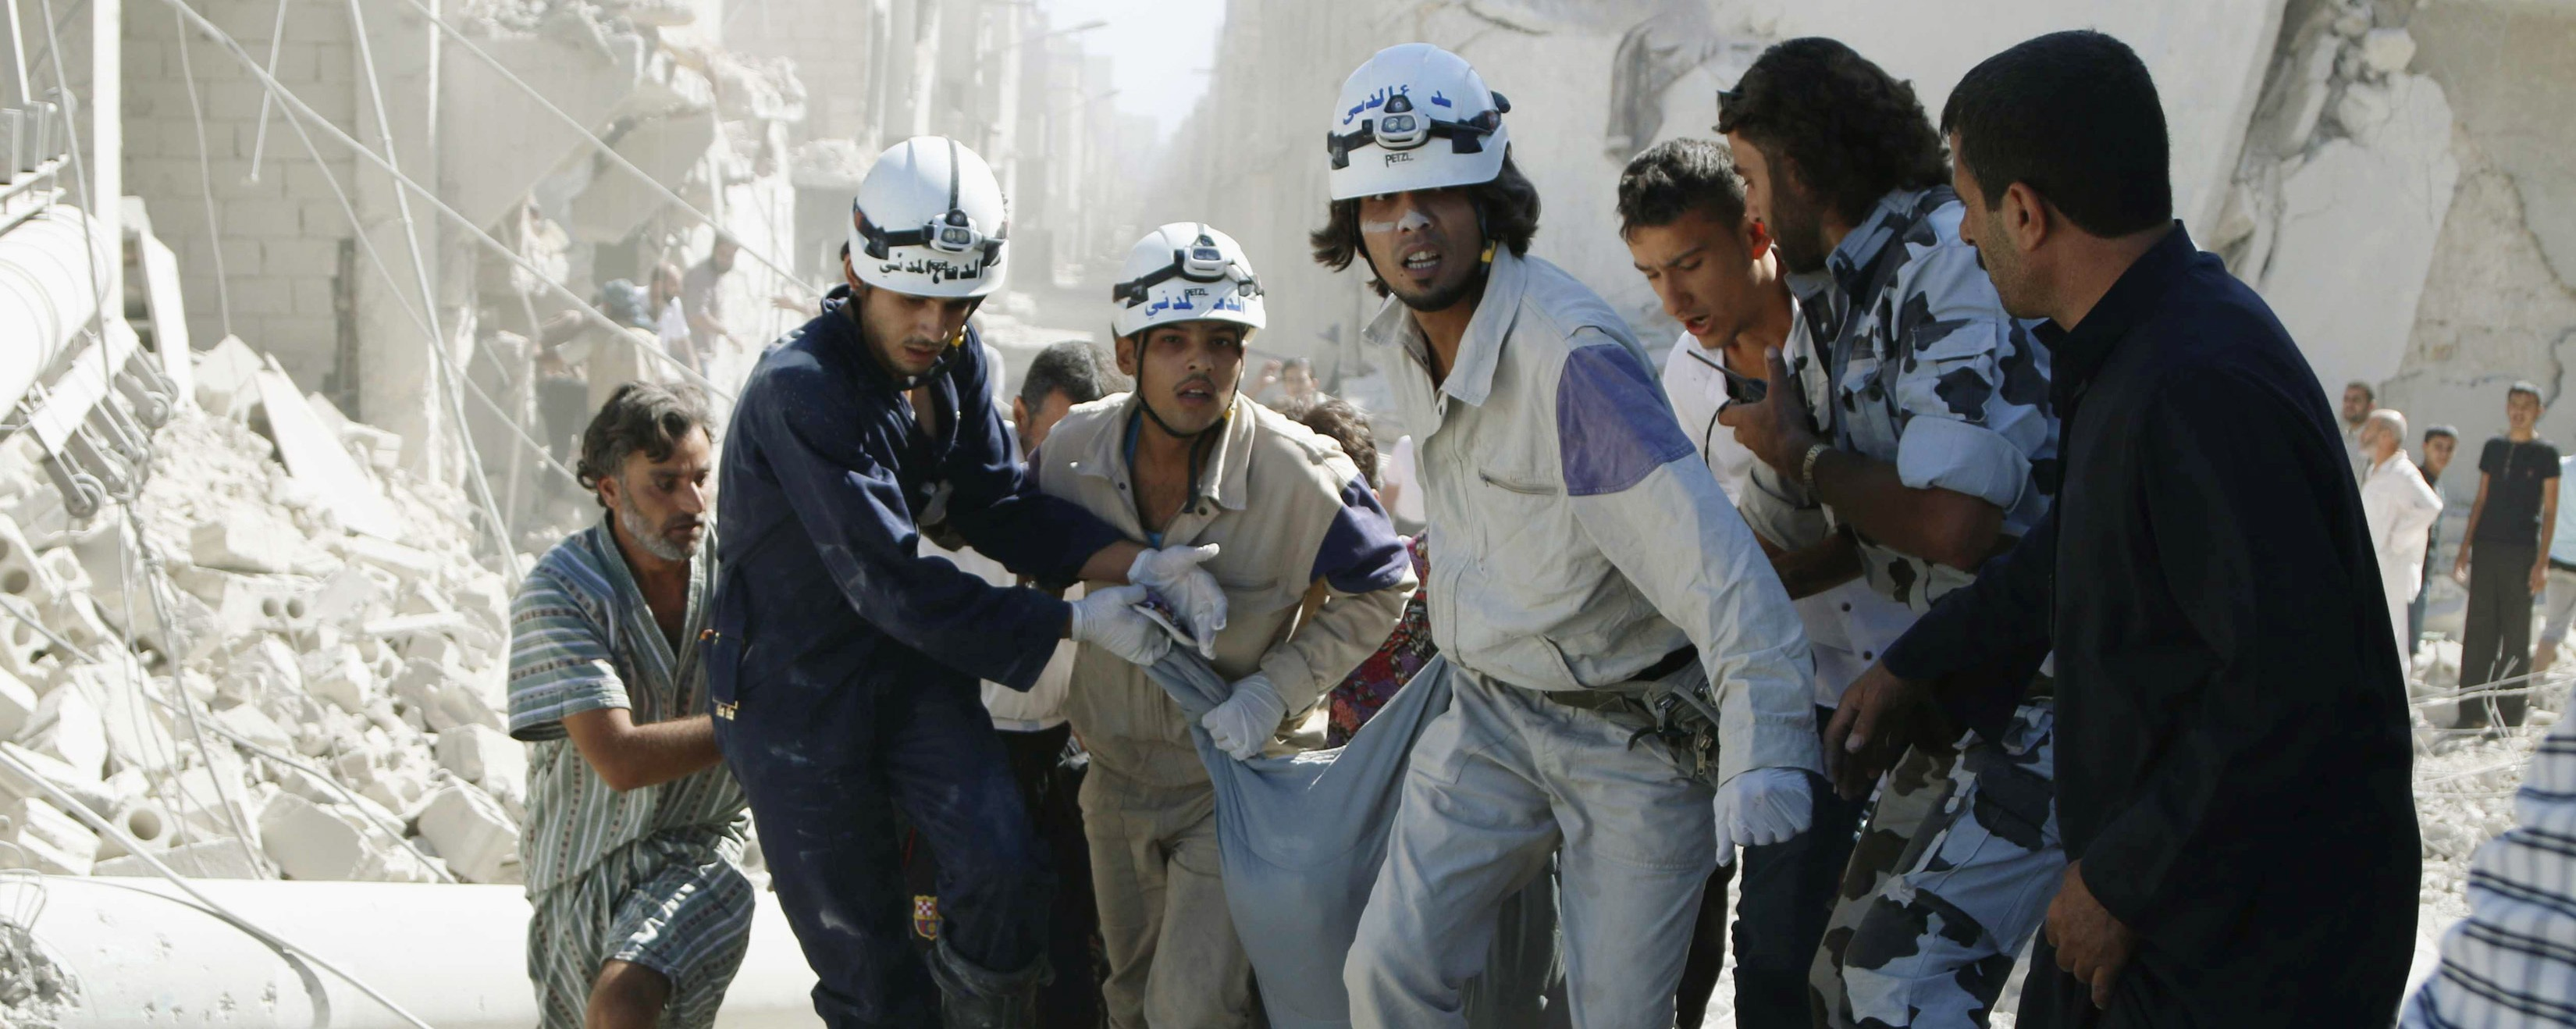 Activists Want the US to Warn Syrian First Responders About Incoming Barrel Bombs